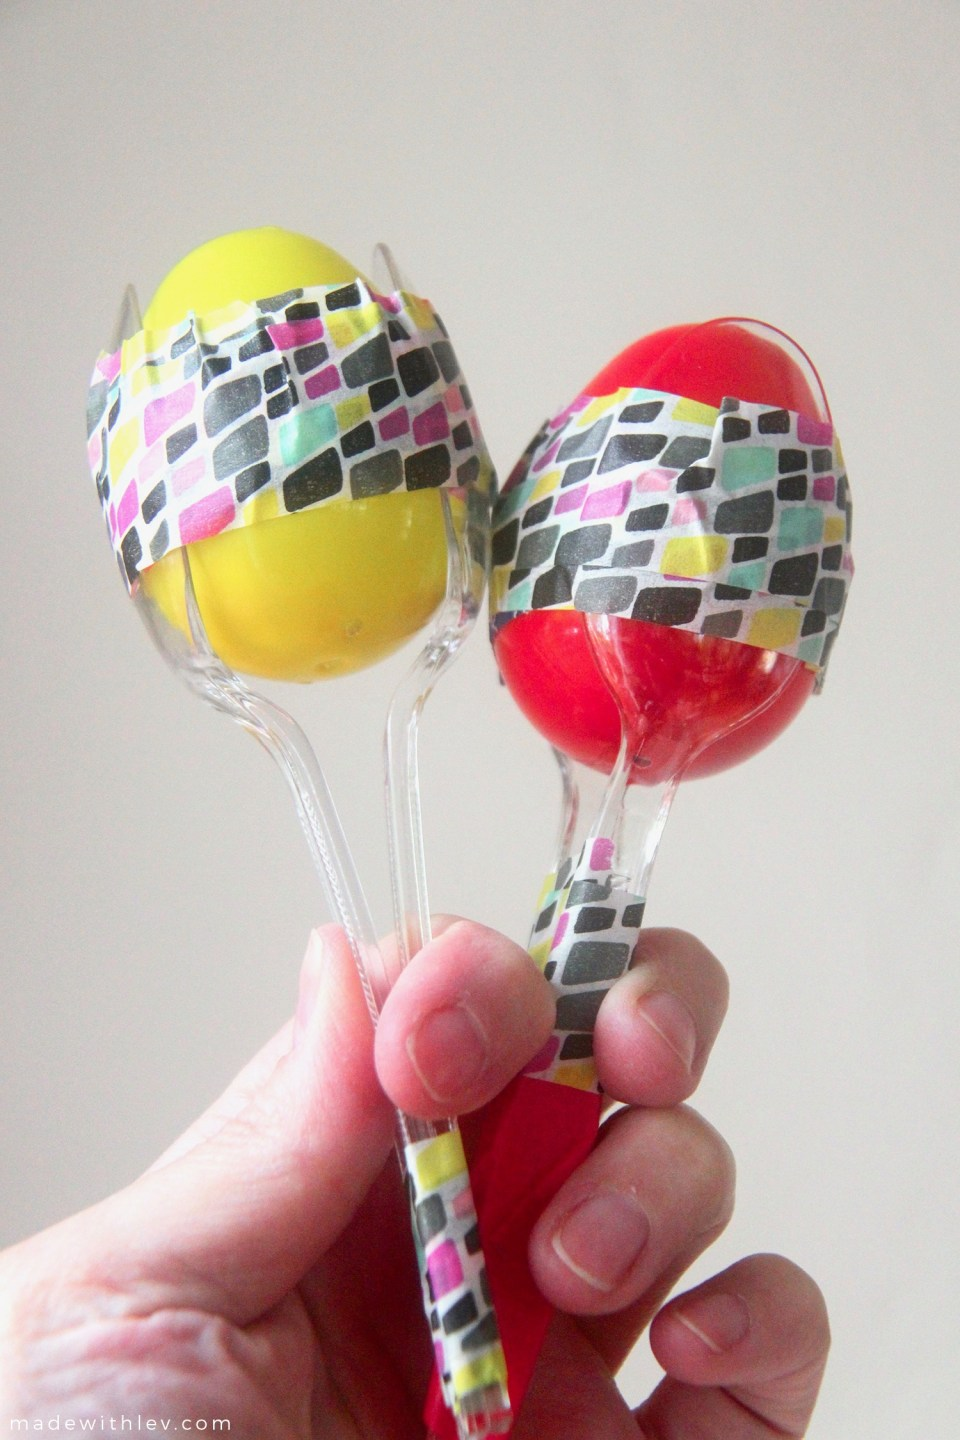 Plastic Egg Maracas for Cinco de Mayo | This project involves minimal supplies and (hopefully) ones that you have in your house already. It's also a really great project to have in your back pocket post-Easter since plastic eggs are seriously on sale.    #musicalinstruments #toddlercrafts #sensoryplay #noisemakers #maracas #cincodemayo #partyfavor #partycraft #colorfulcraft #plasticeggs #kidscrafts #familycrafts #preschoolcraft